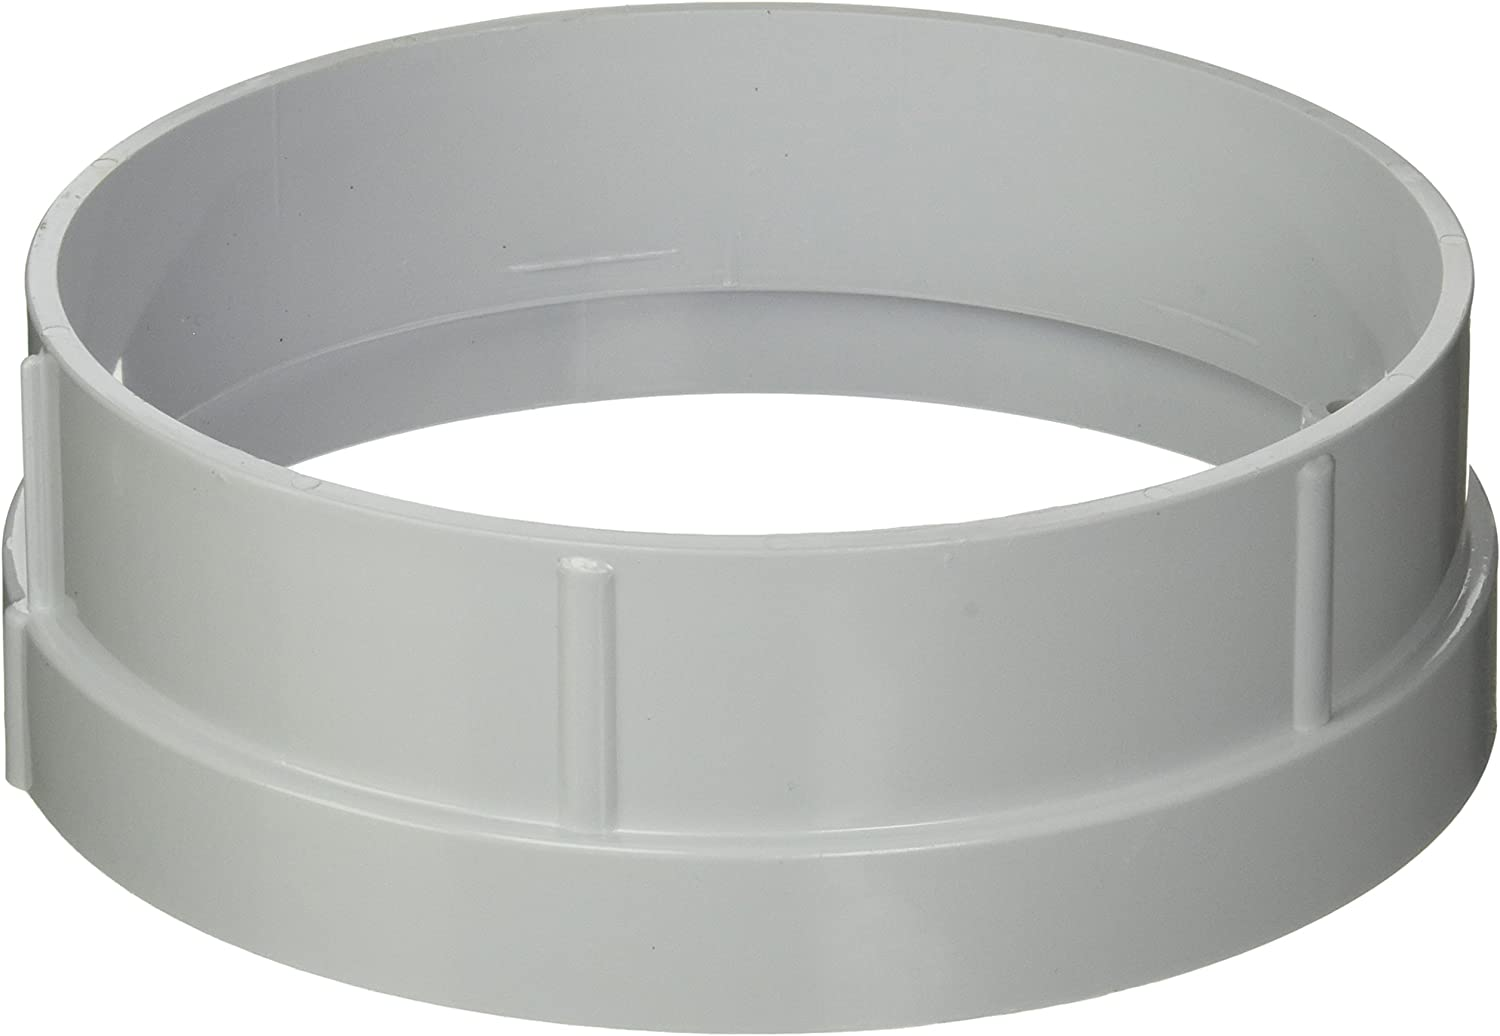 Hayward SPX1084P Round Extension Collar Replacement for Hayward Automatic Skimmers